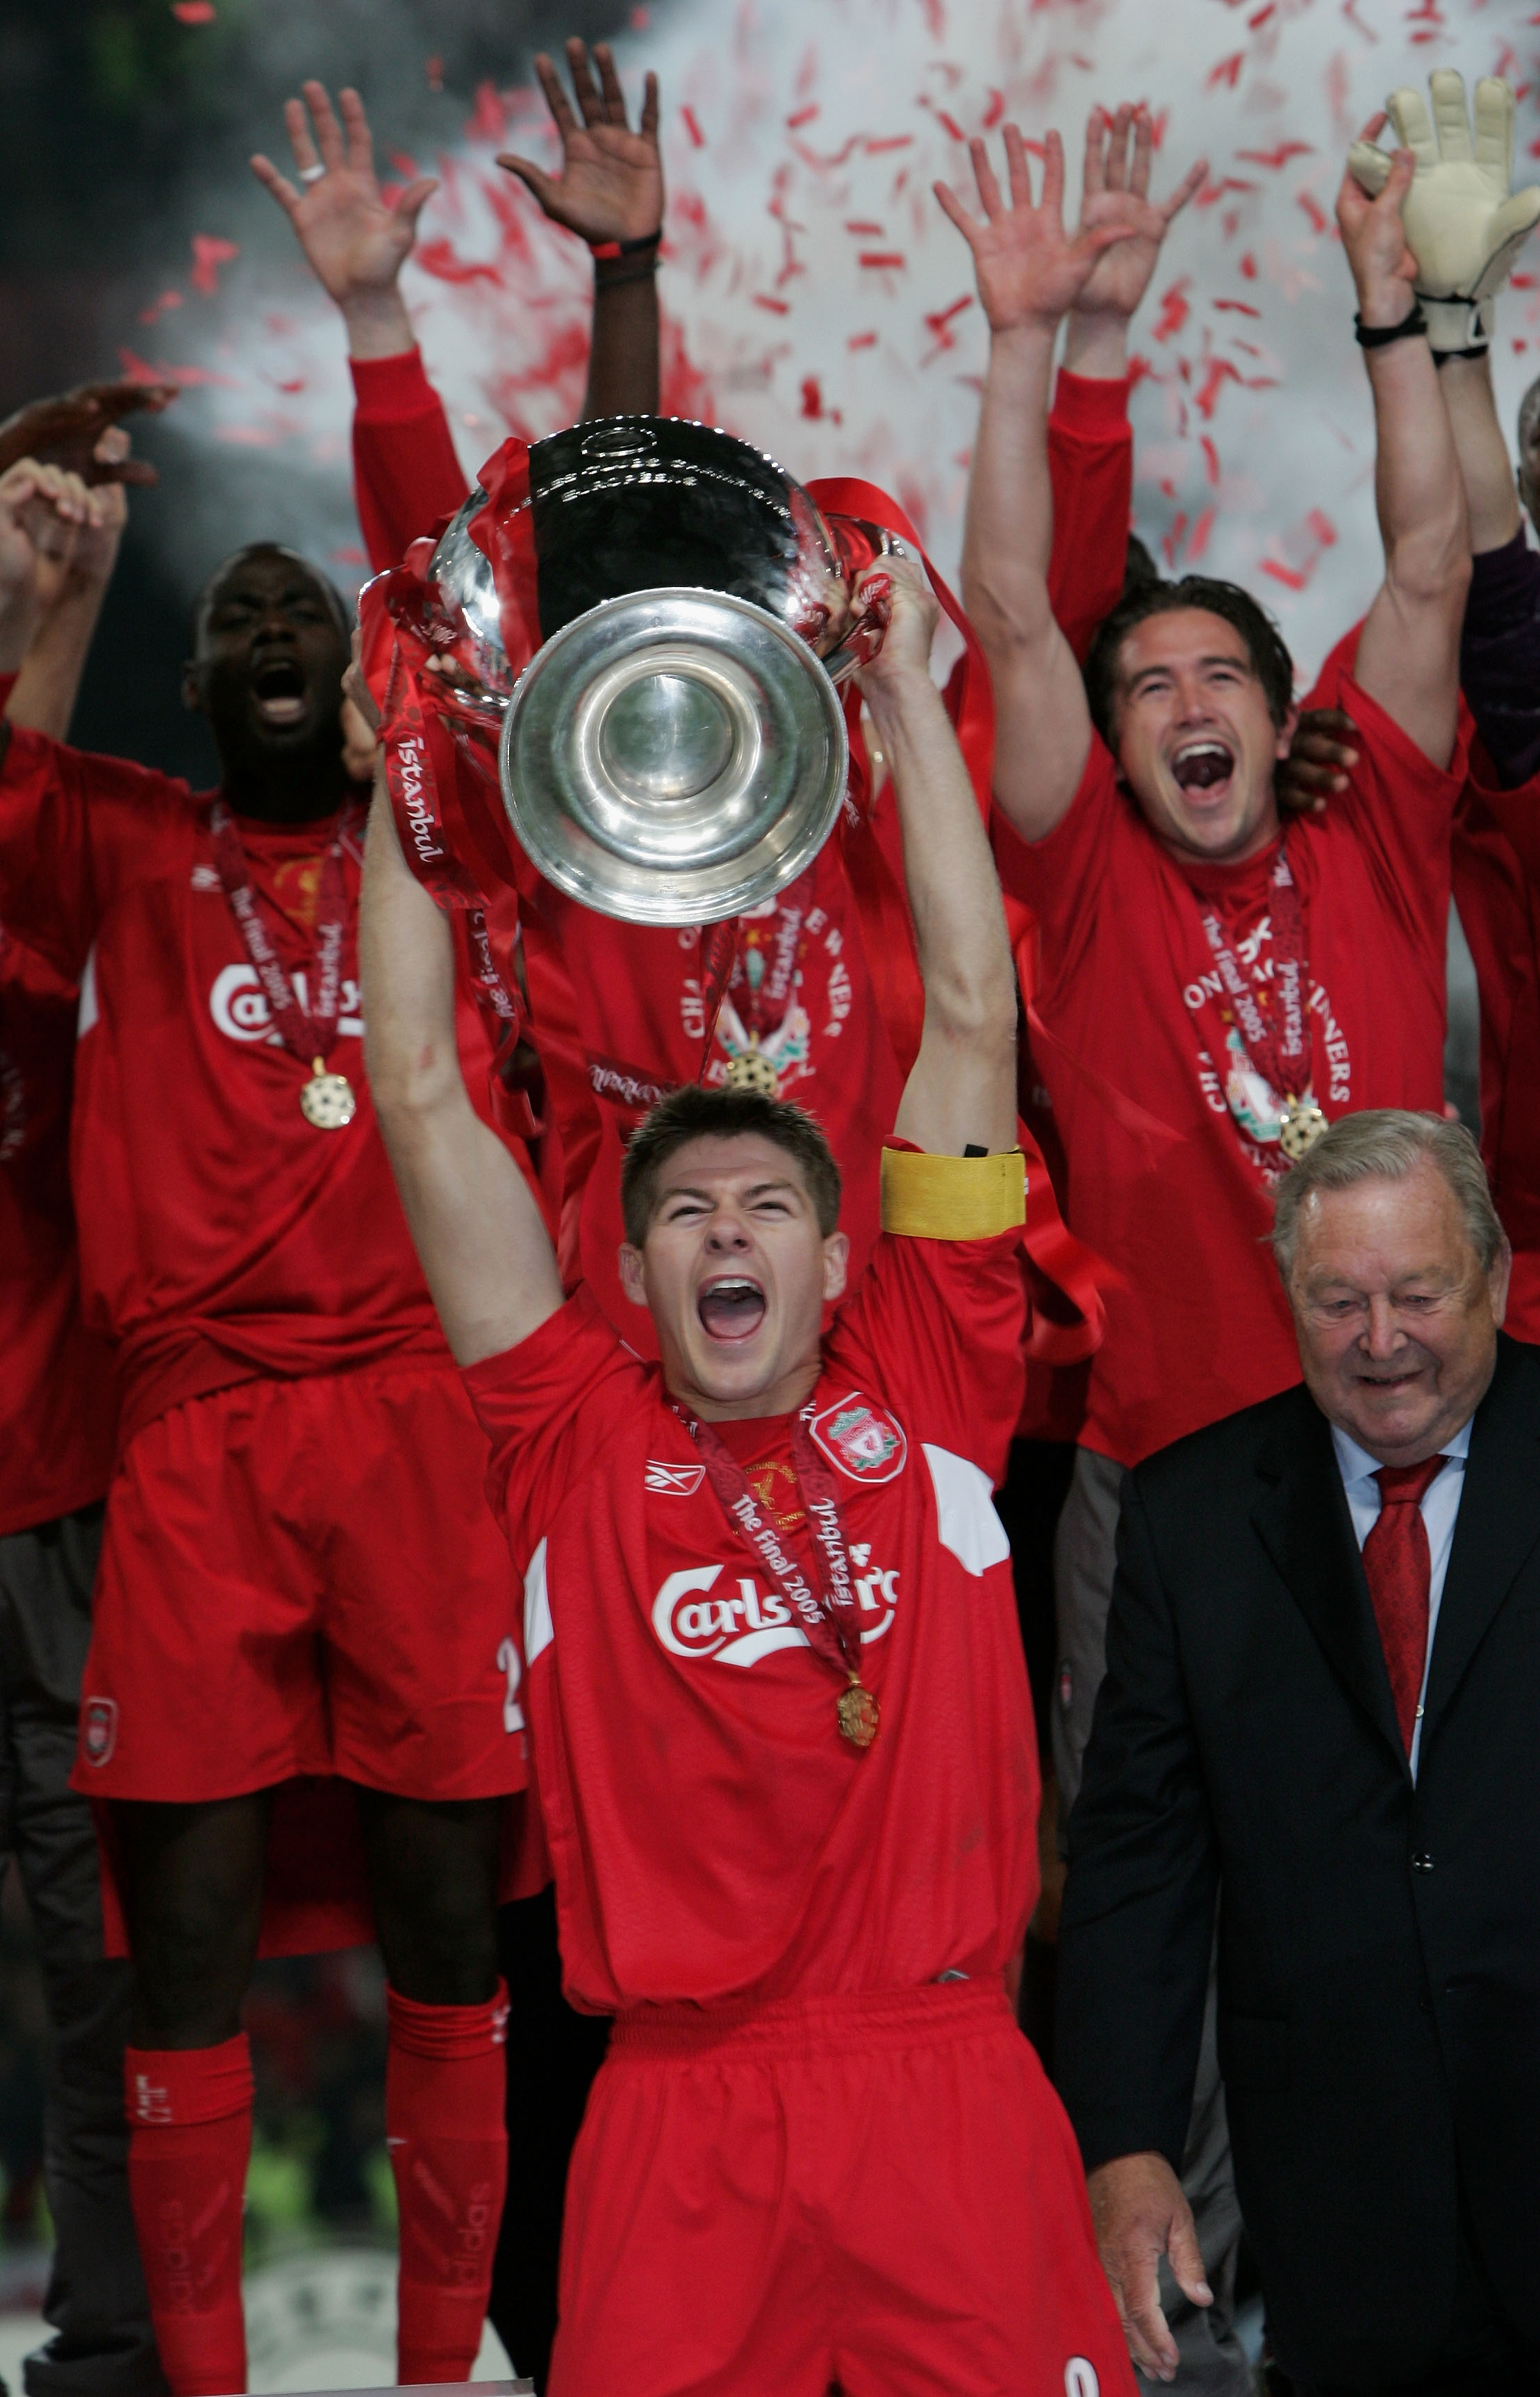 ISTANBUL, TURKEY - MAY 25:  Liverpool captain Steven Gerrard lifts the European Cup after Liverpool won the European Champions League final between Liverpool and AC Milan on May 25, 2005 at the Ataturk Olympic Stadium in Istanbul, Turkey.  (Photo by Clive